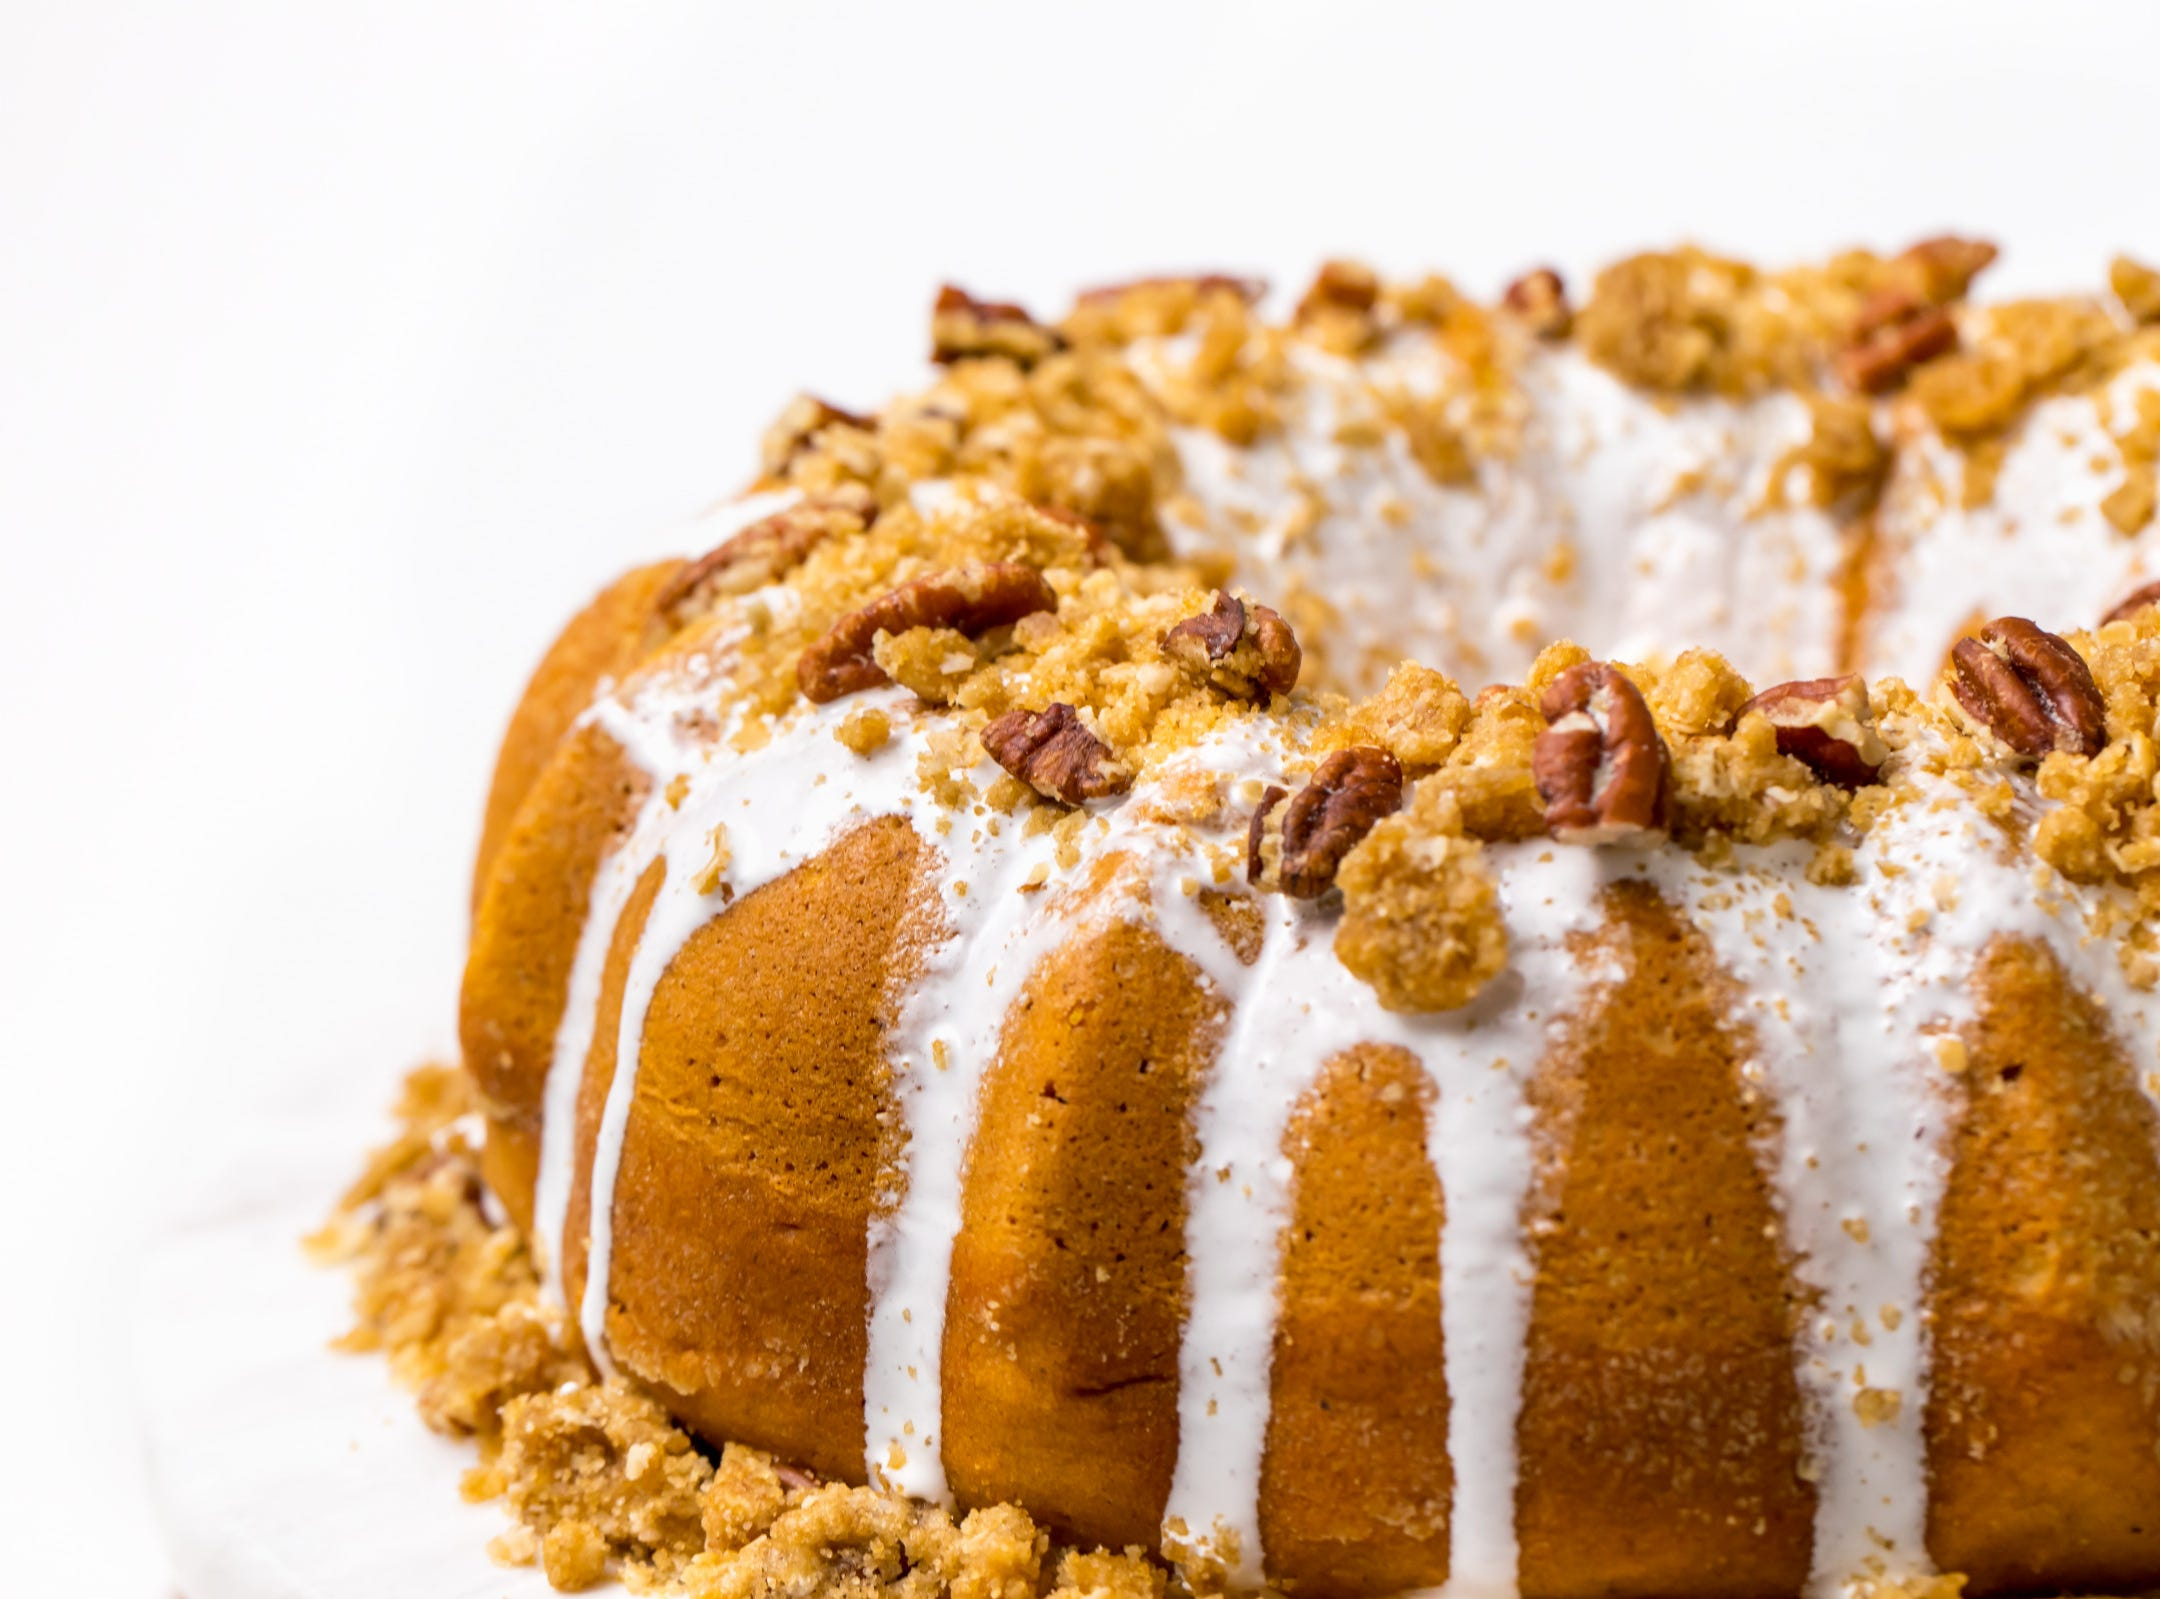 Ready to ditch your traditional Thanksgiving sweet potato casserole for a decadent sweet potato dessert? Our scrumptious sweet potato cake with marshmallow frosting, courtesy of Divas Can Cook, will make your holiday guests want to skip the turkey and eat dessert first.